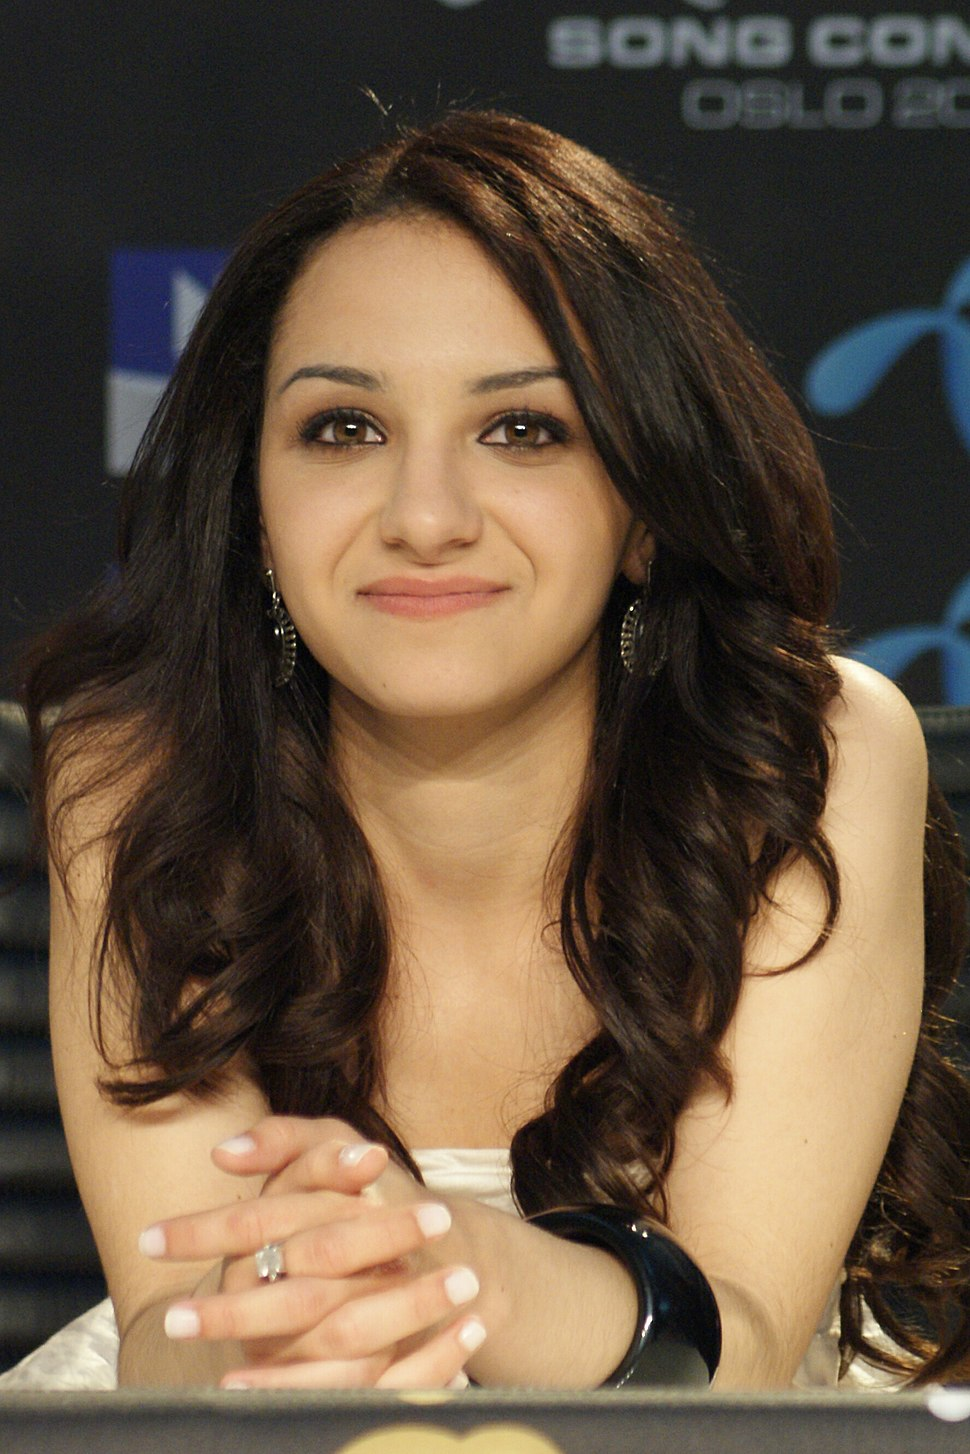 Filipa Azevedo @ press conference during Eurovision Song Contest 2010